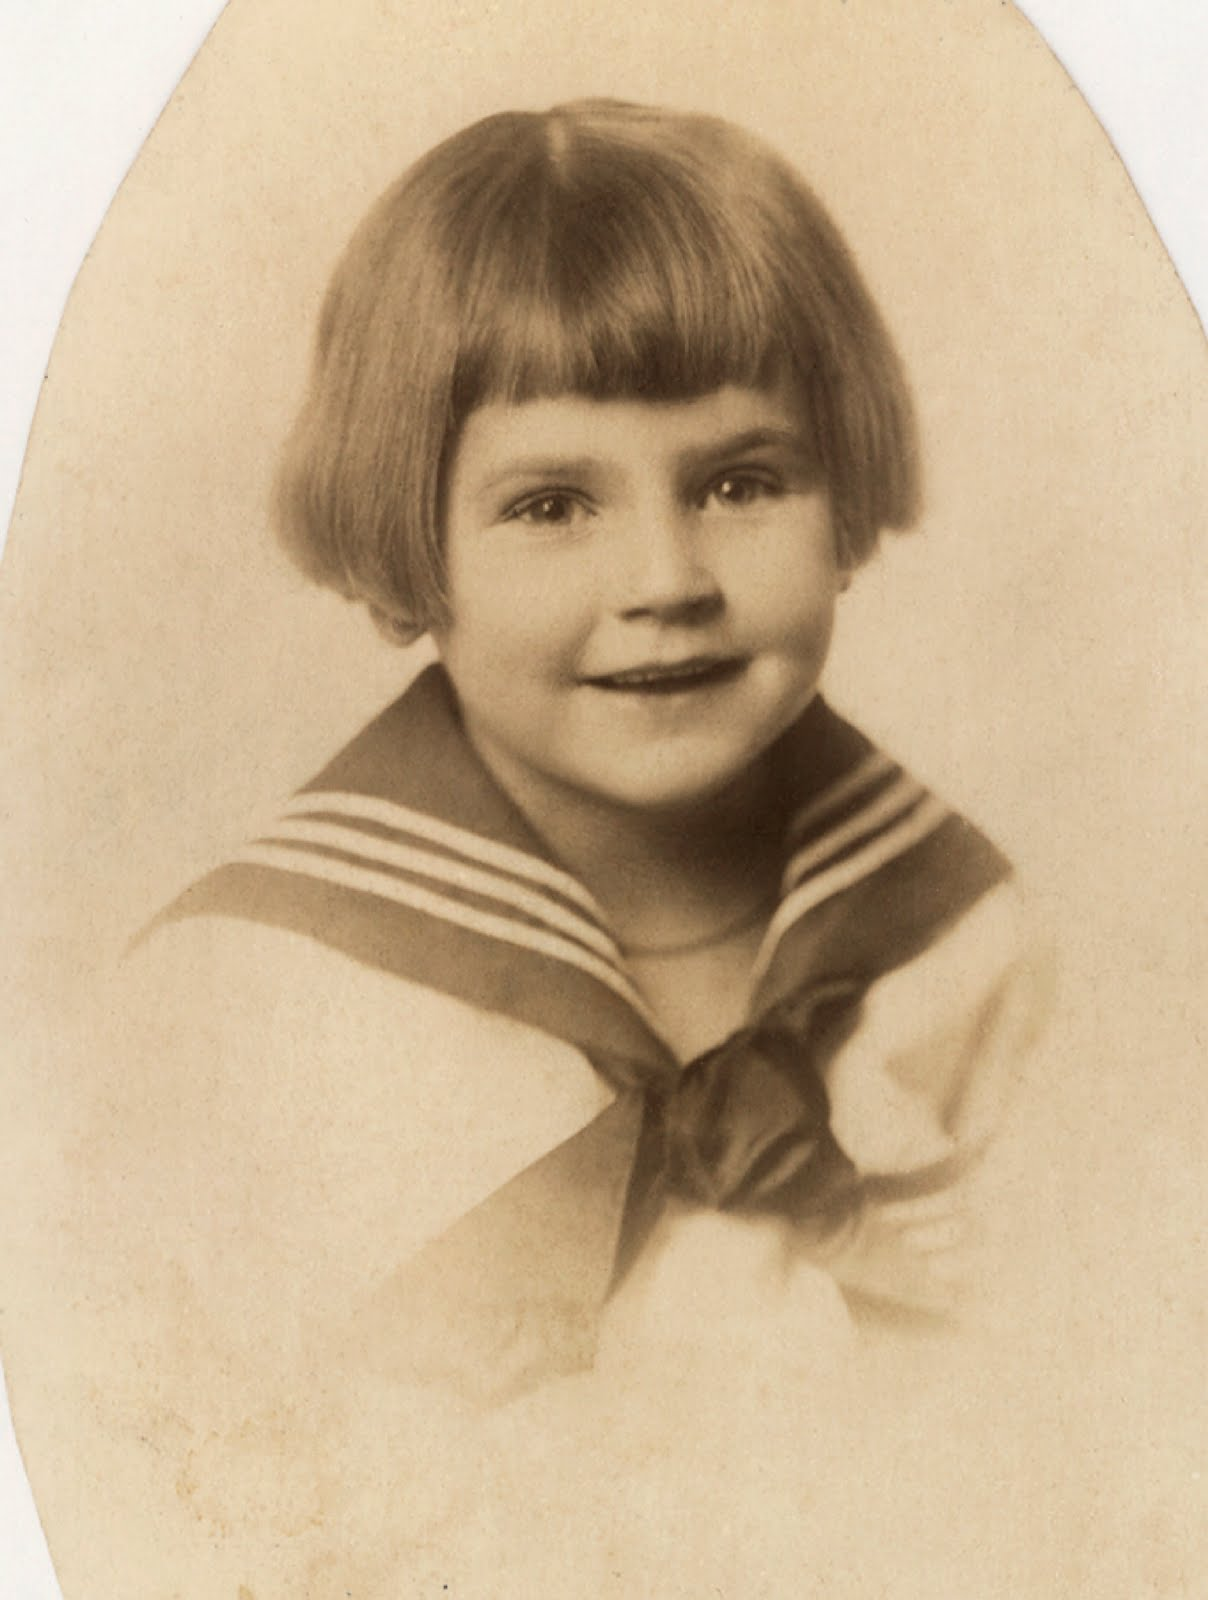 EB as a Child